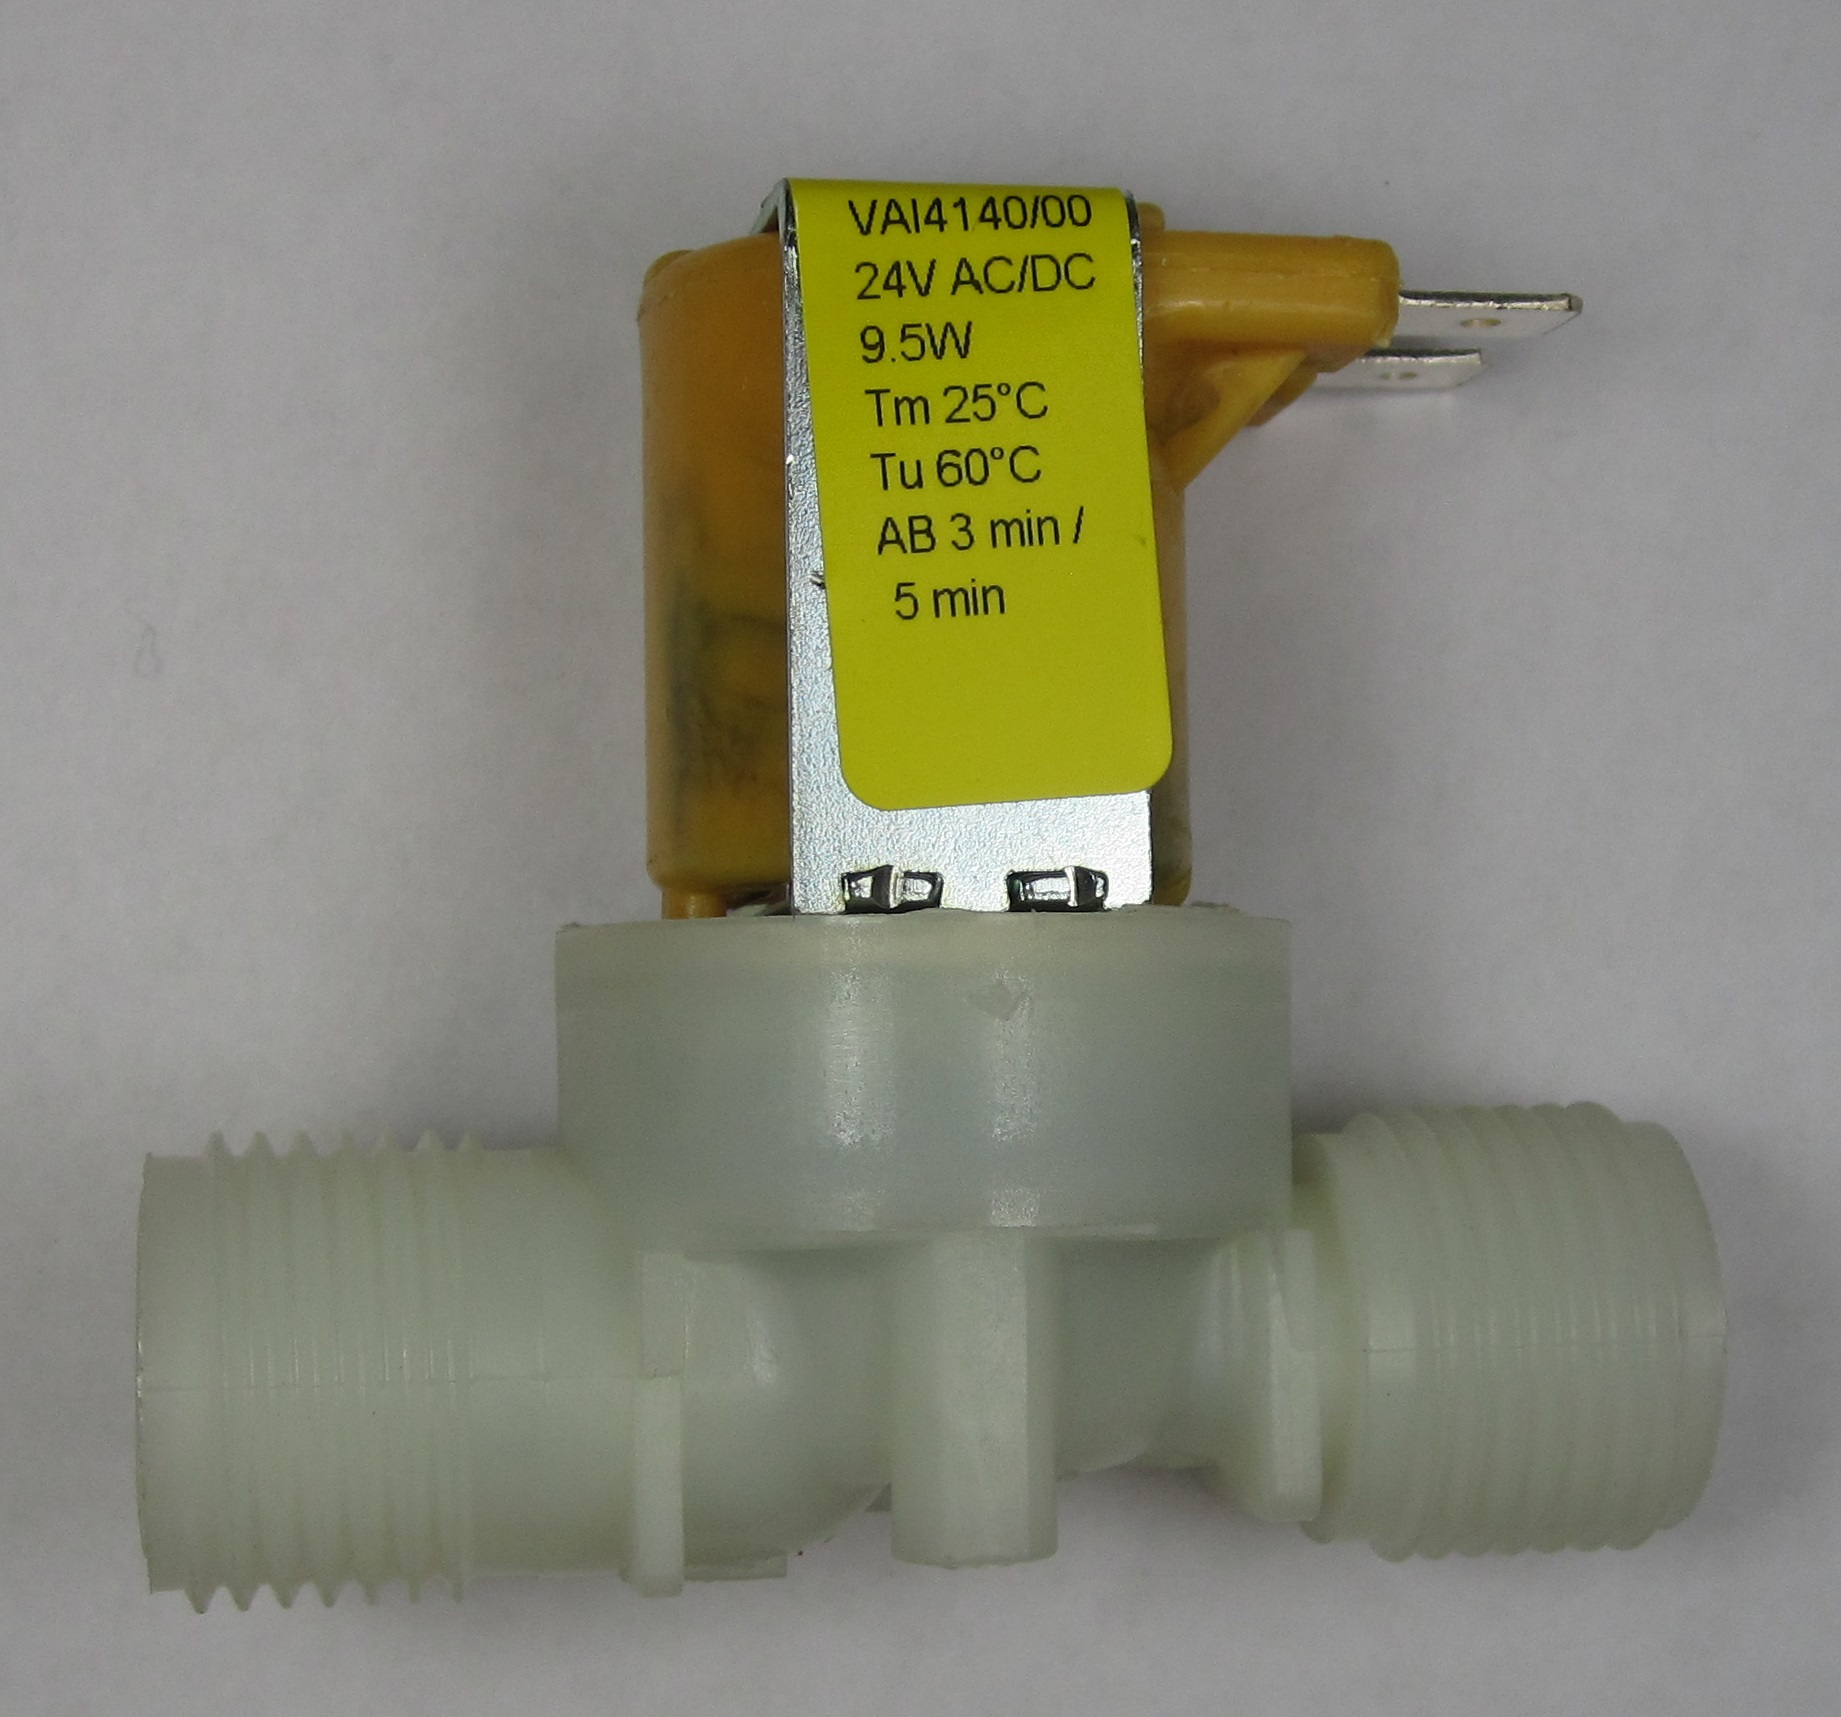 Water Valves components available at Abbeychart